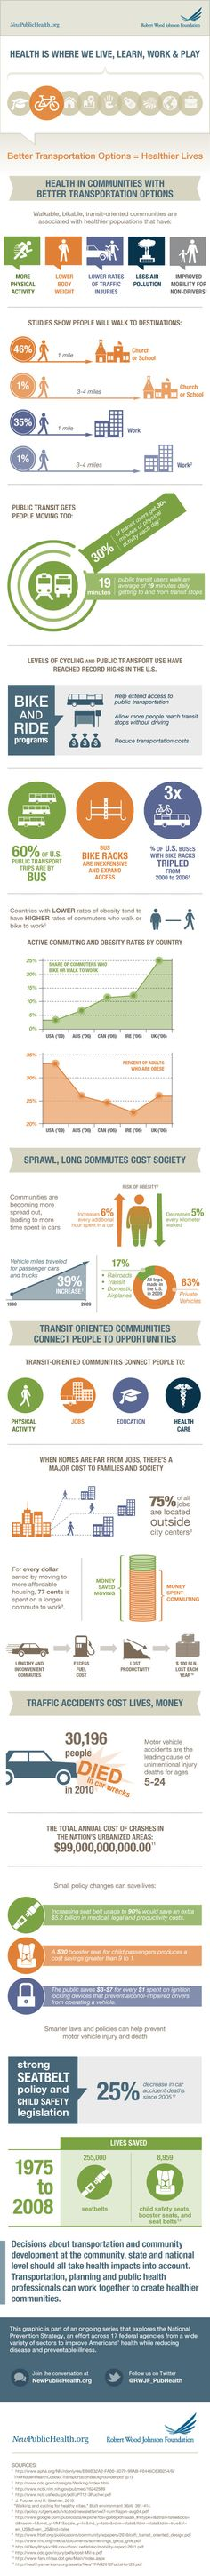 "This infographic from Robert Wood Johnson Foundation advocates for better transit options to promote health. It even promotes positive behavior change among viewers, e.g. explaining that ""for every dollar saved by moving to more affordable housing, 77 cents is spent on a longer commute to work,"" or ""a $30 booster seat for child passengers produces a cost savings greater than 9 to 1."""